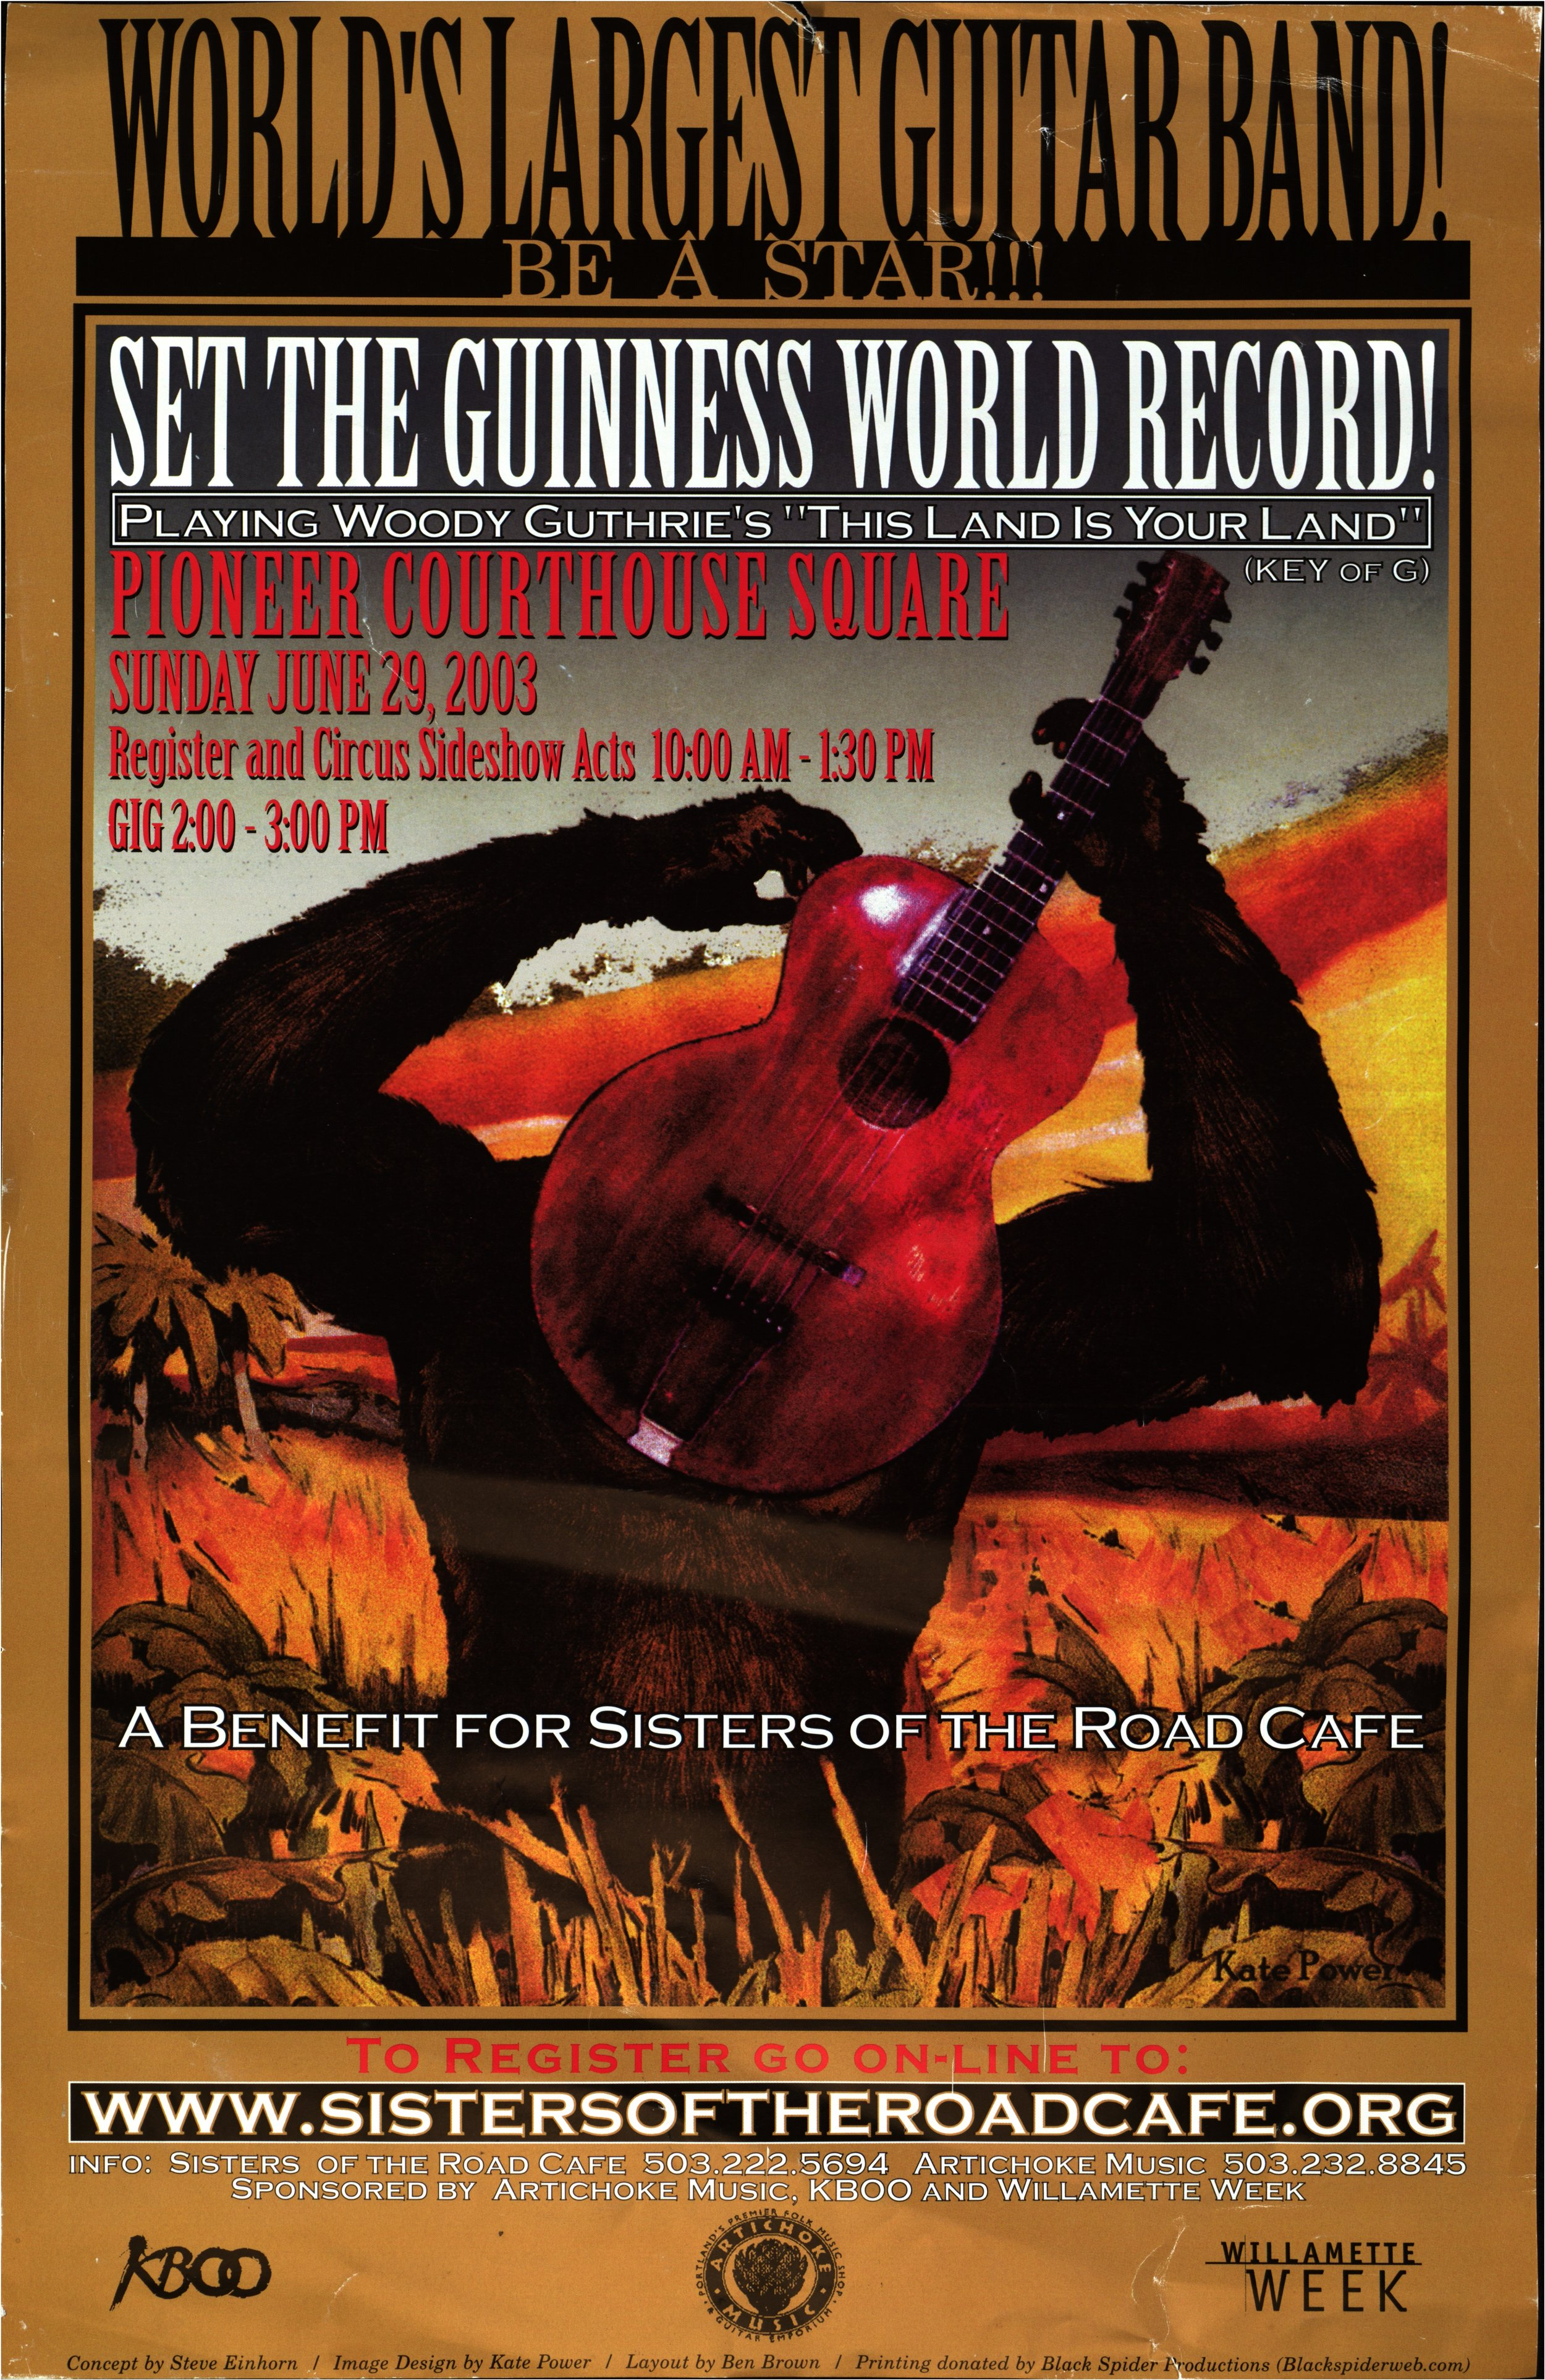 KBOO_Posters_OS_Worlds_Largest_Guitar_Band_2003.jpg